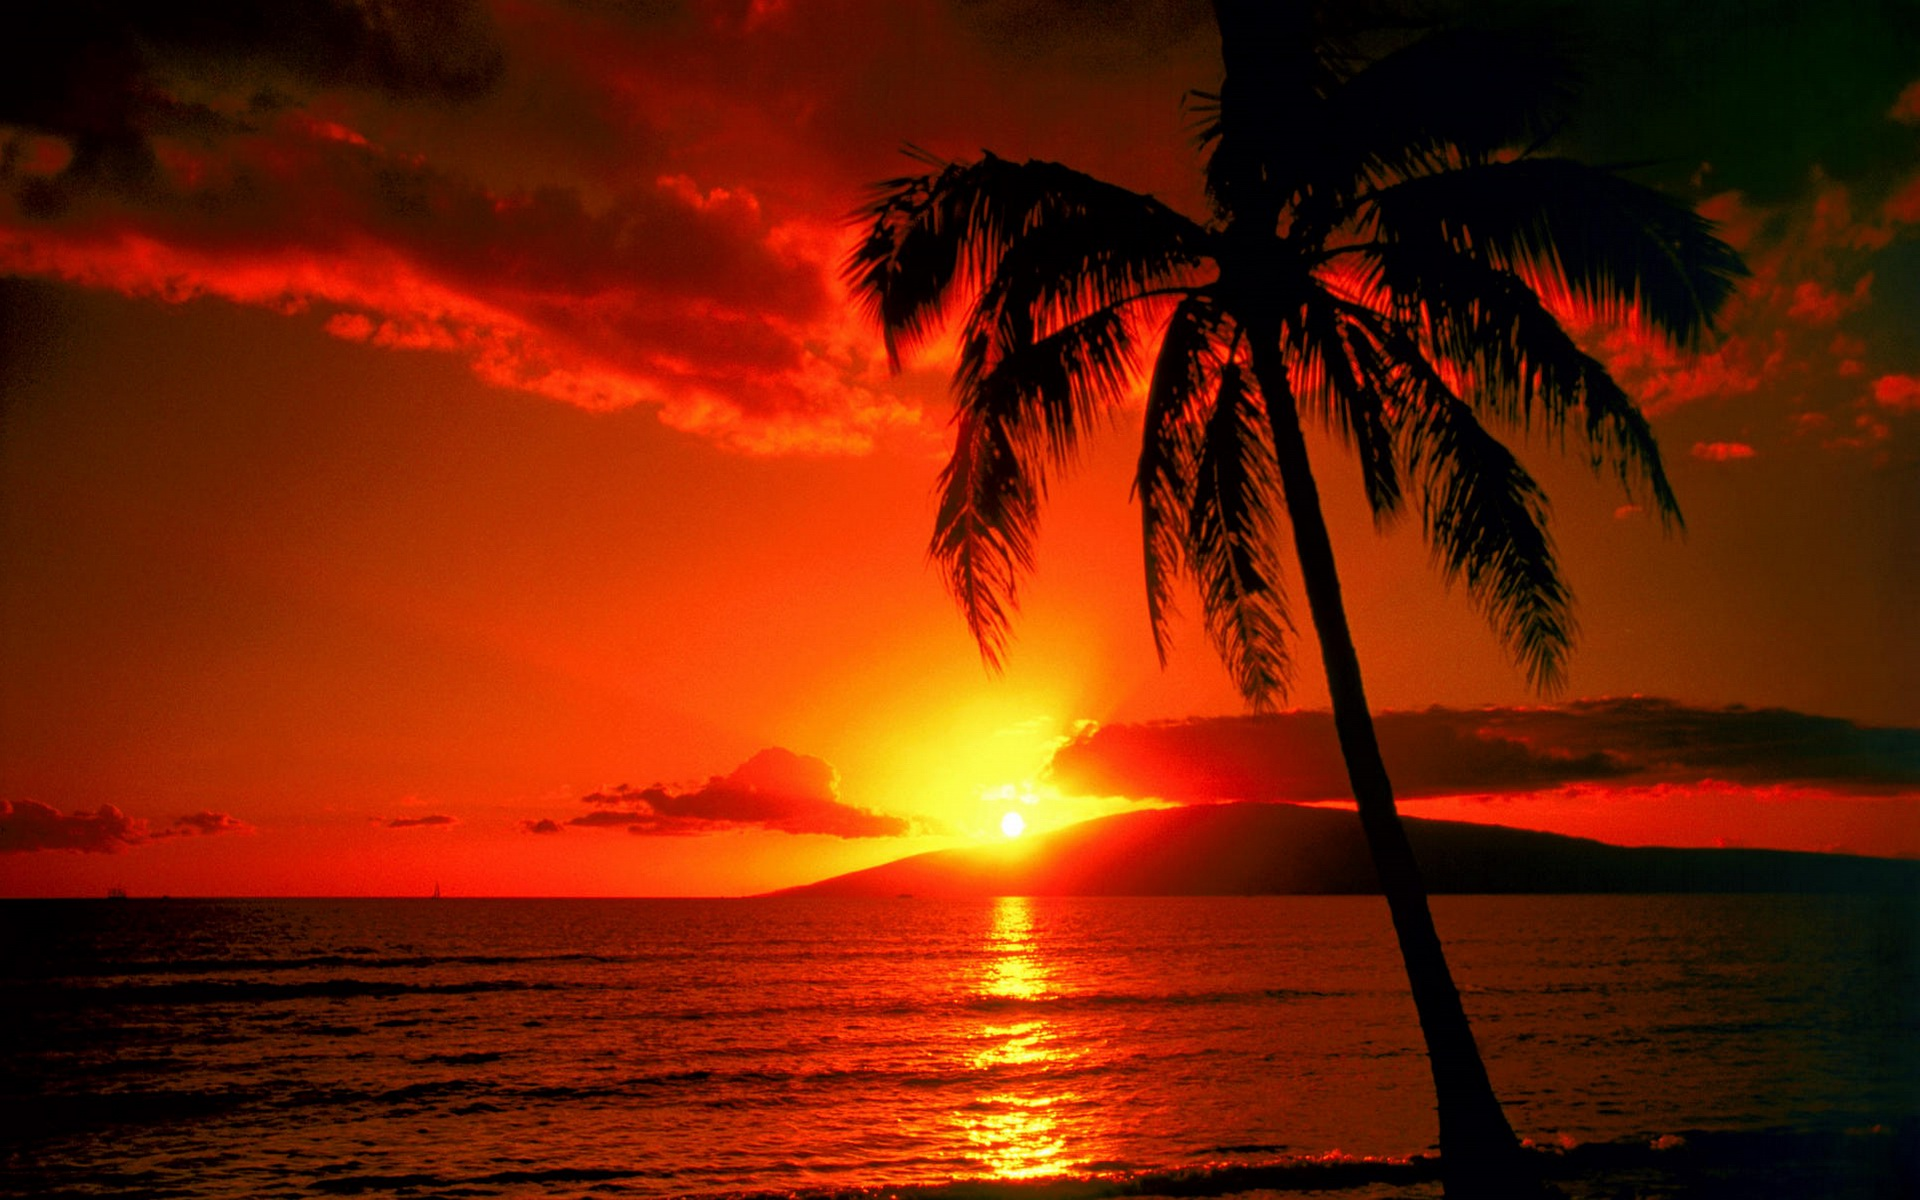 Sunset Beach HD Wallpapers | Beach sunset Desktop Images |